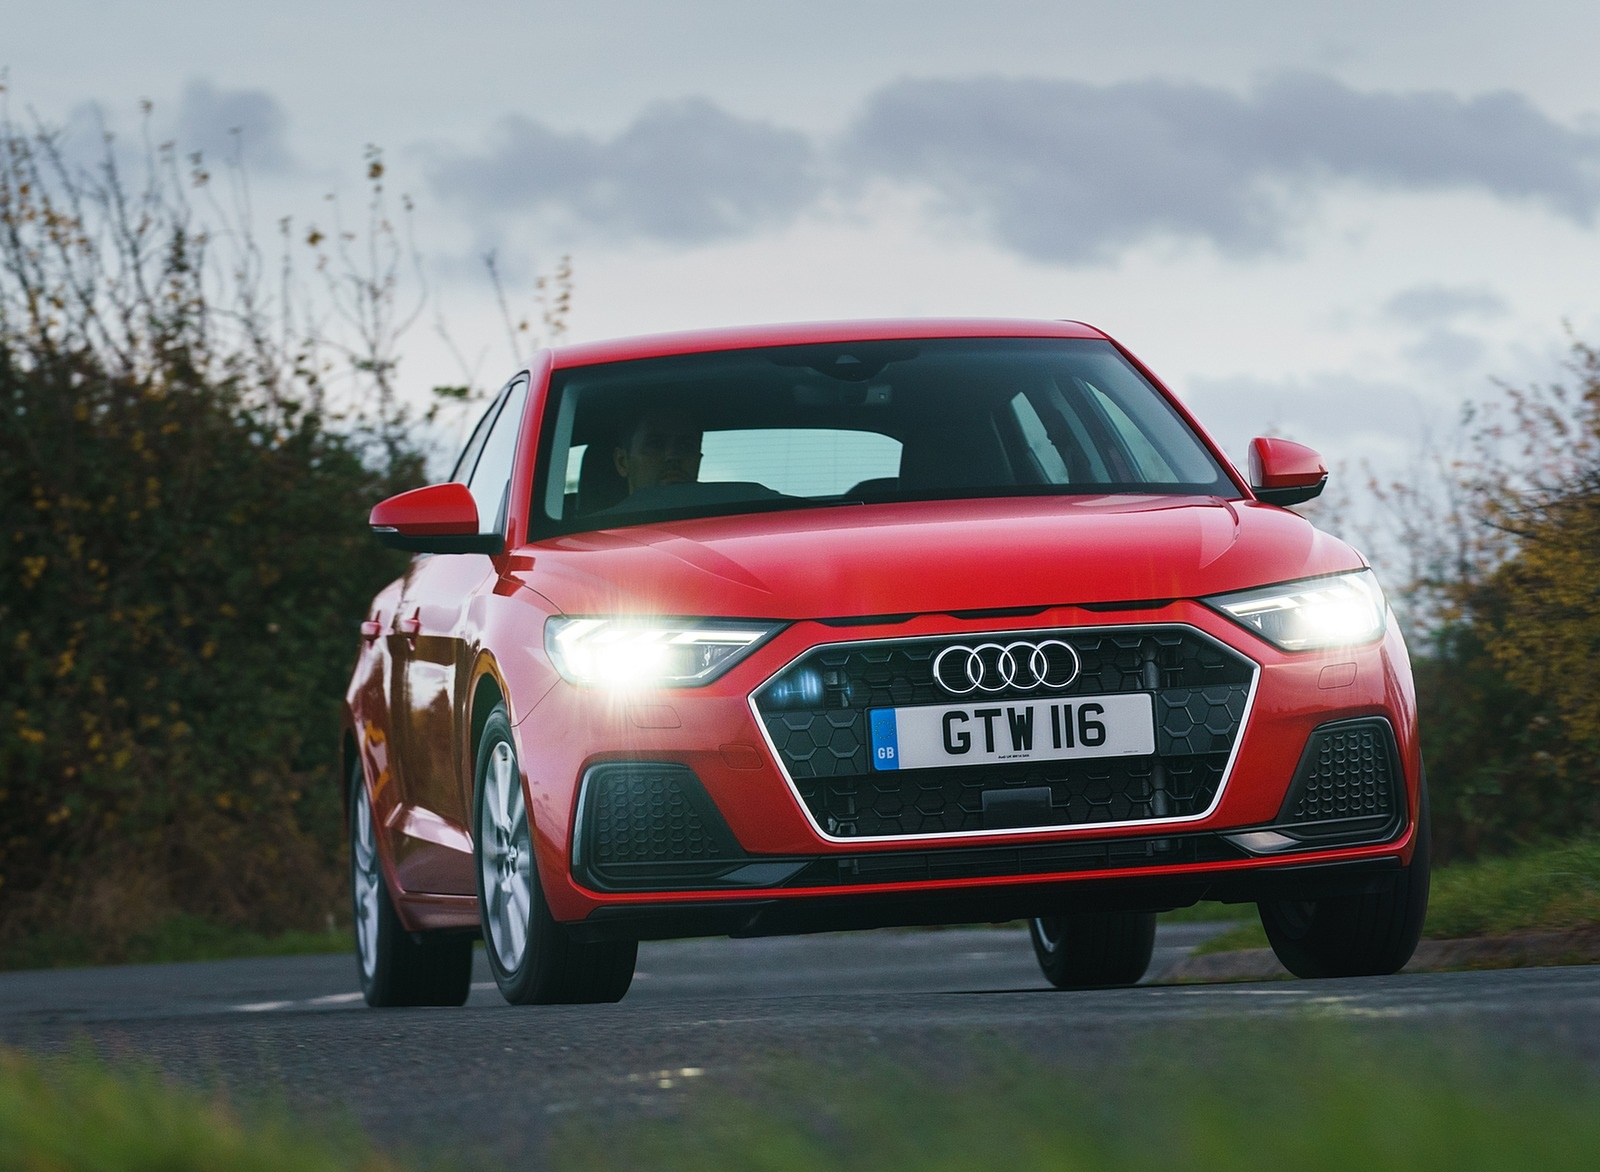 2019 Audi A1 Sportback 30 TFSI (UK-Spec) Front Wallpapers (15)